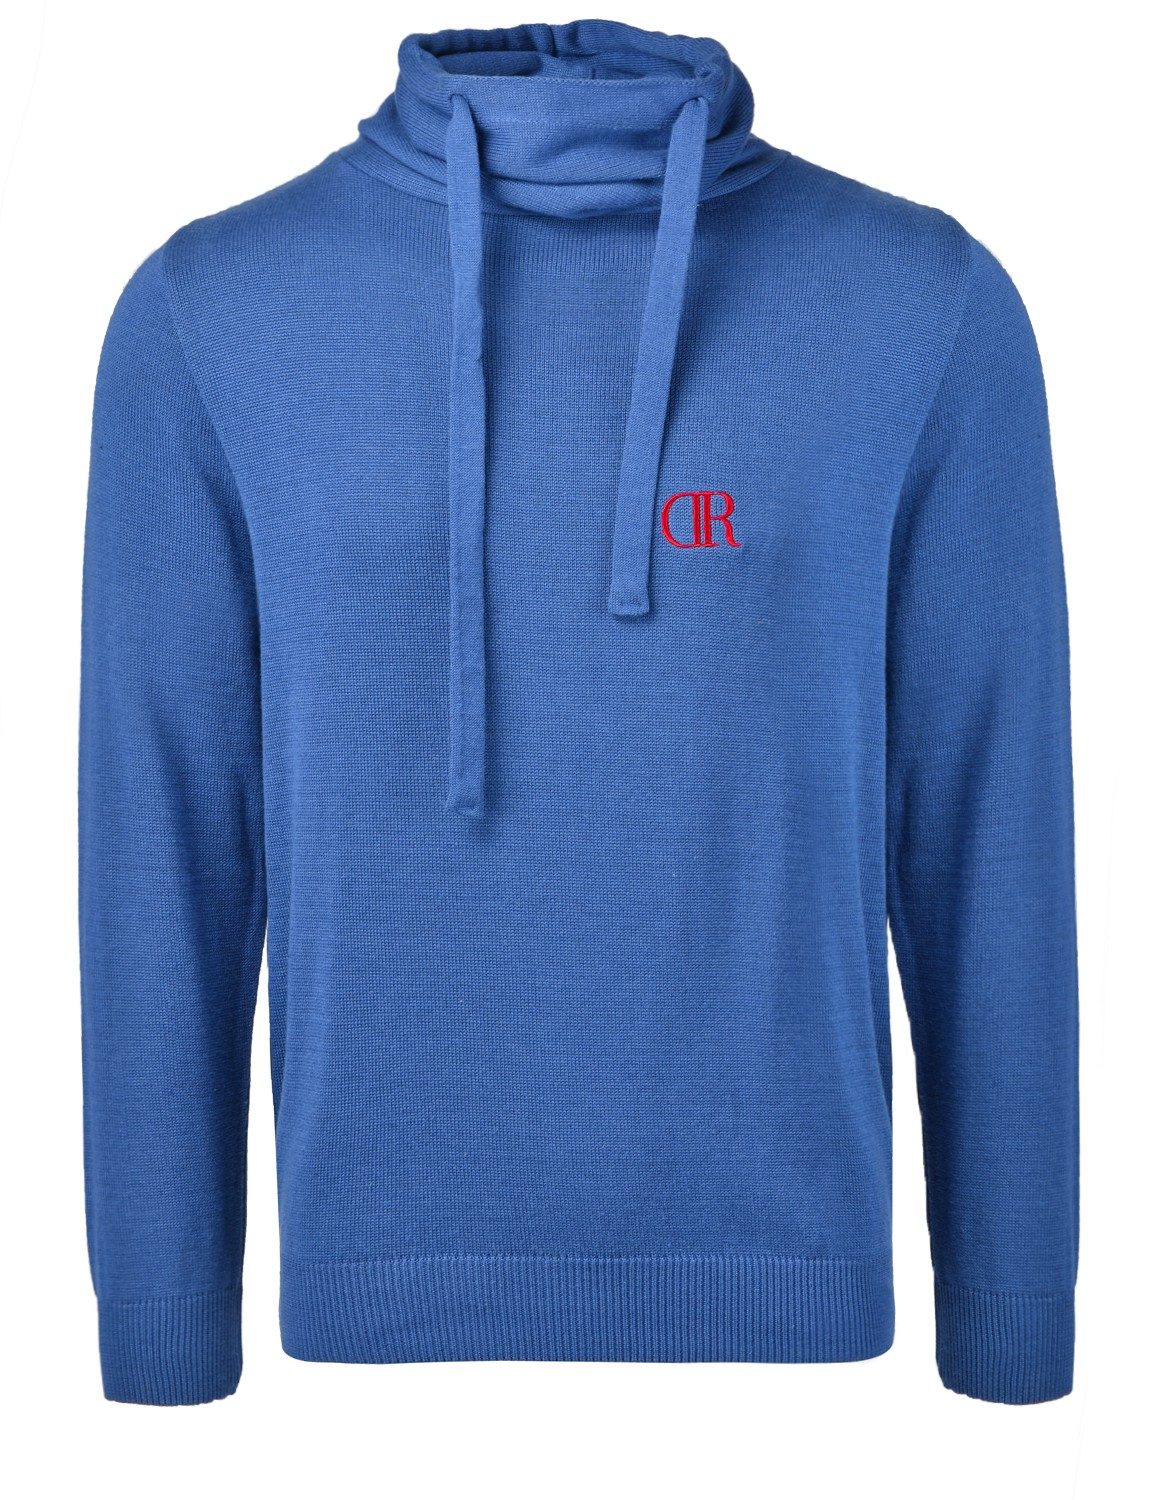 DR Sweater Blue